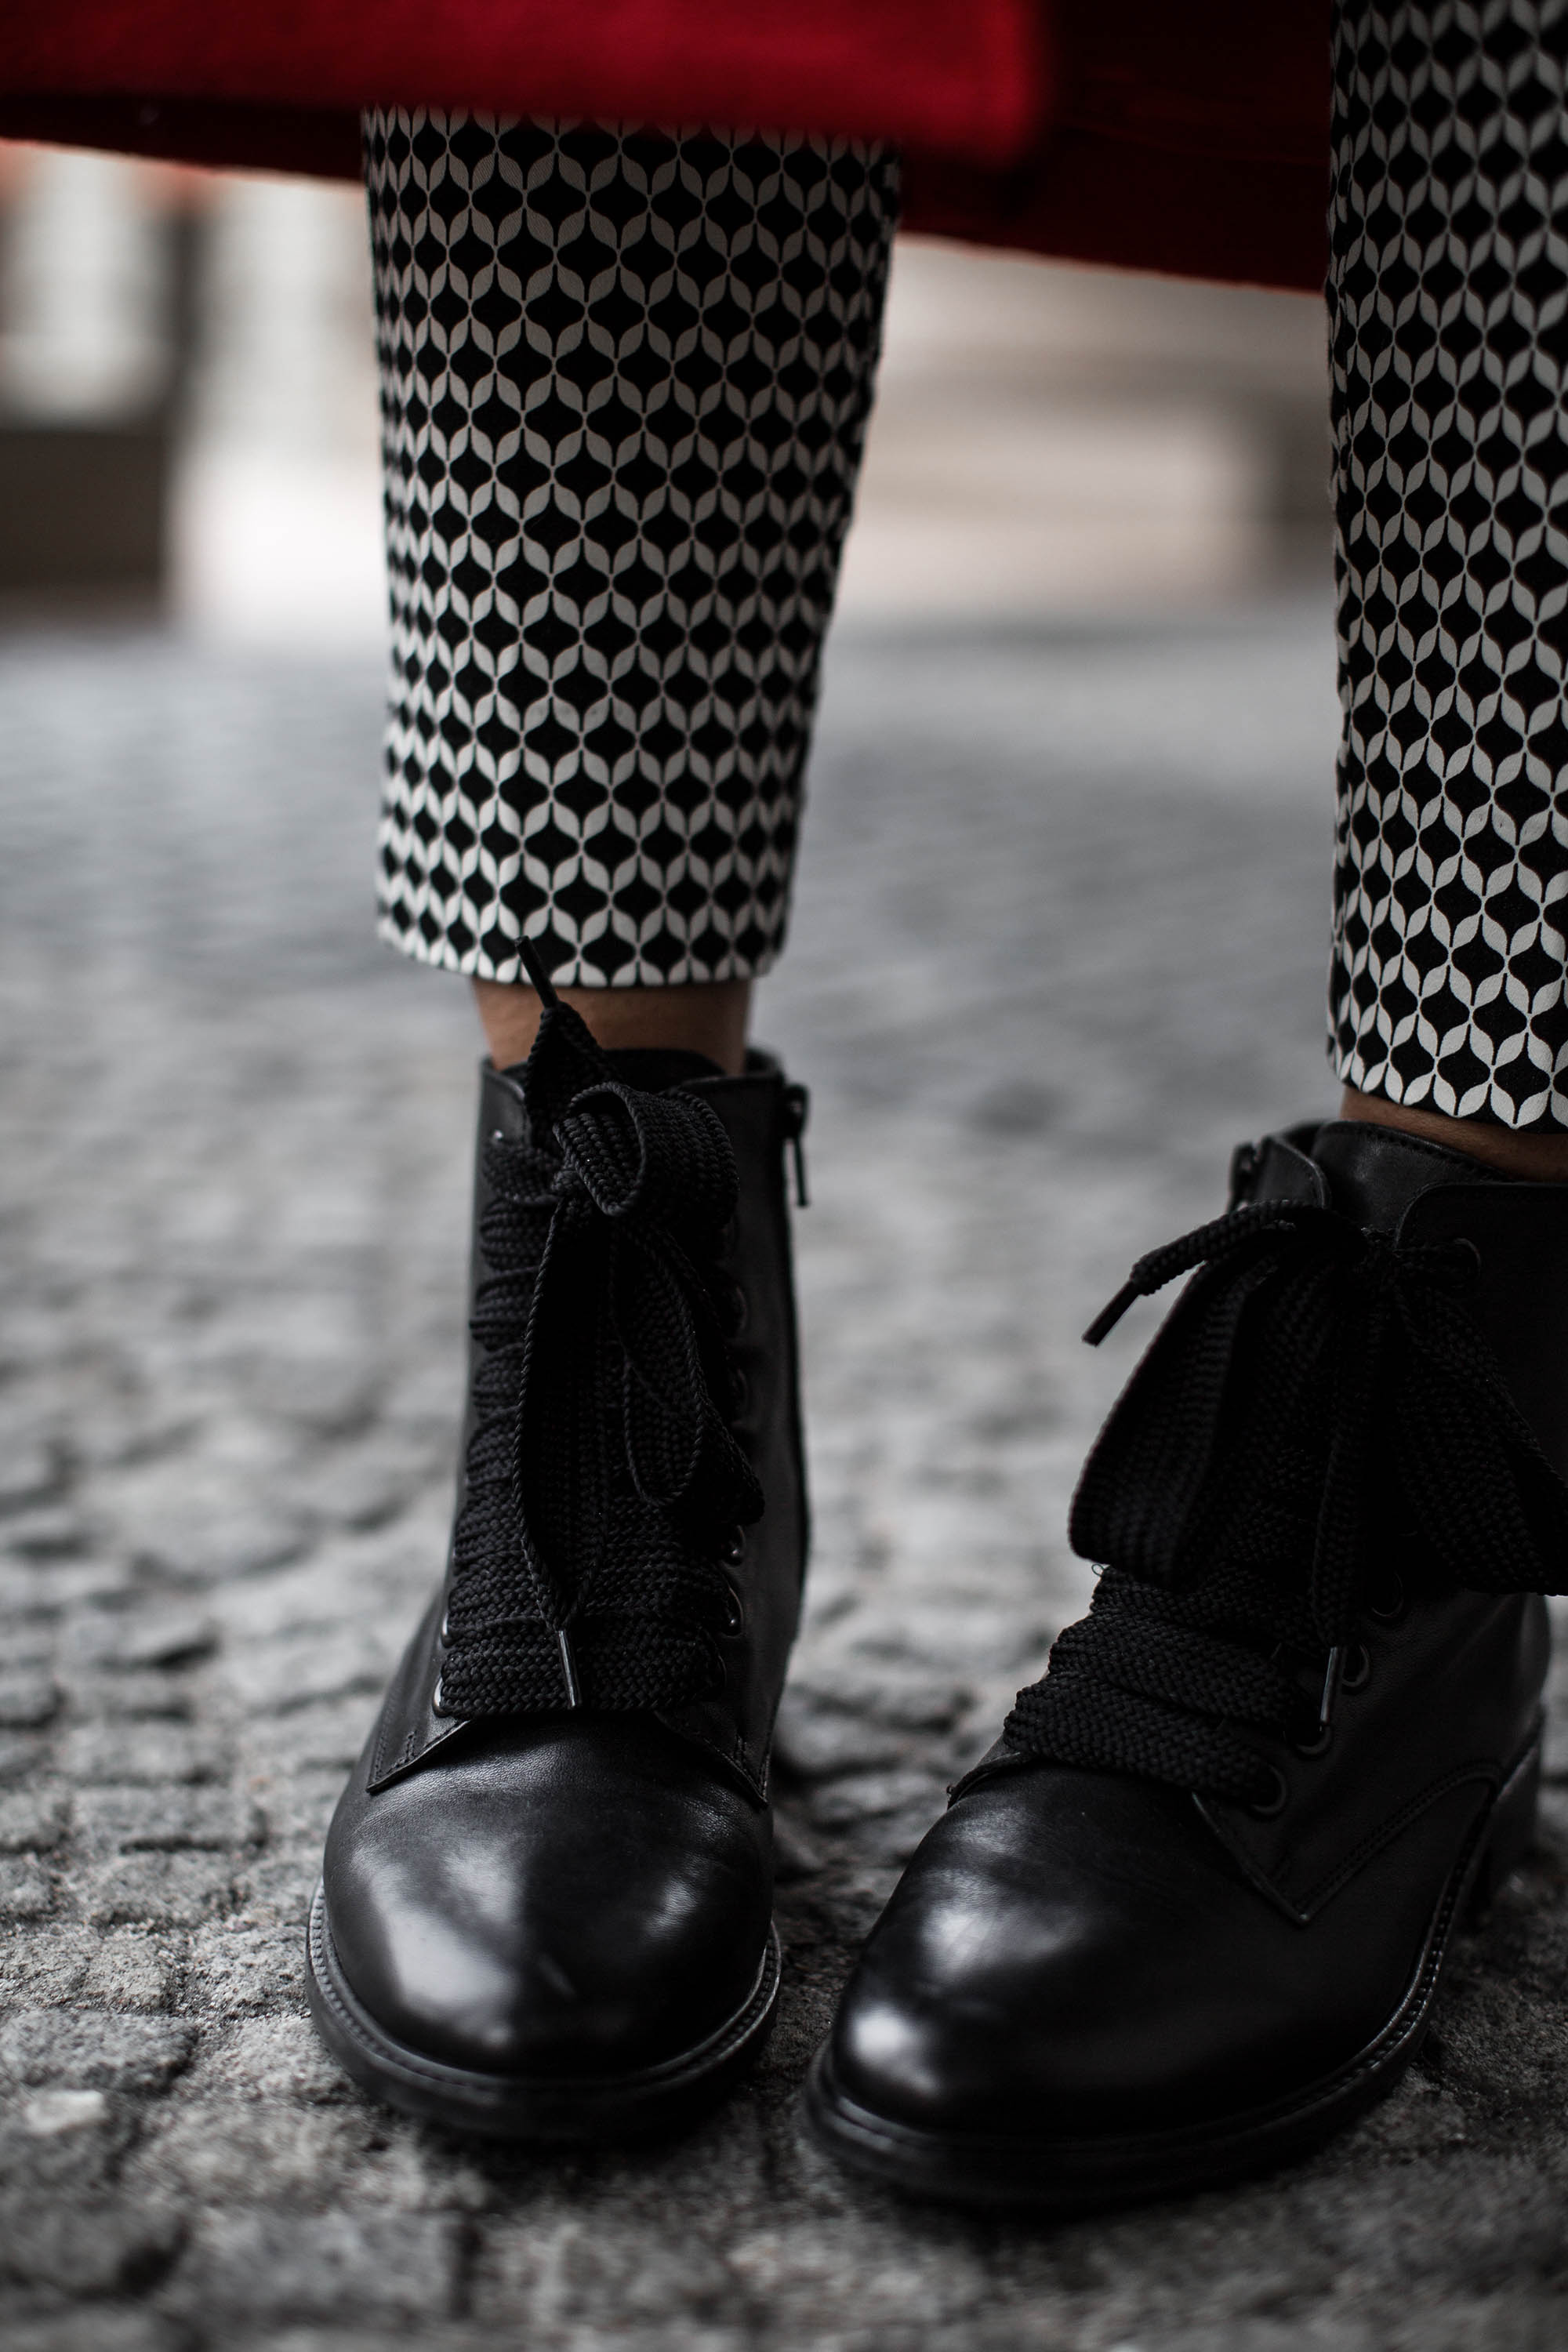 black-palms-hm-roter-mantel-boots-edited-streestyle-fashionblog-8